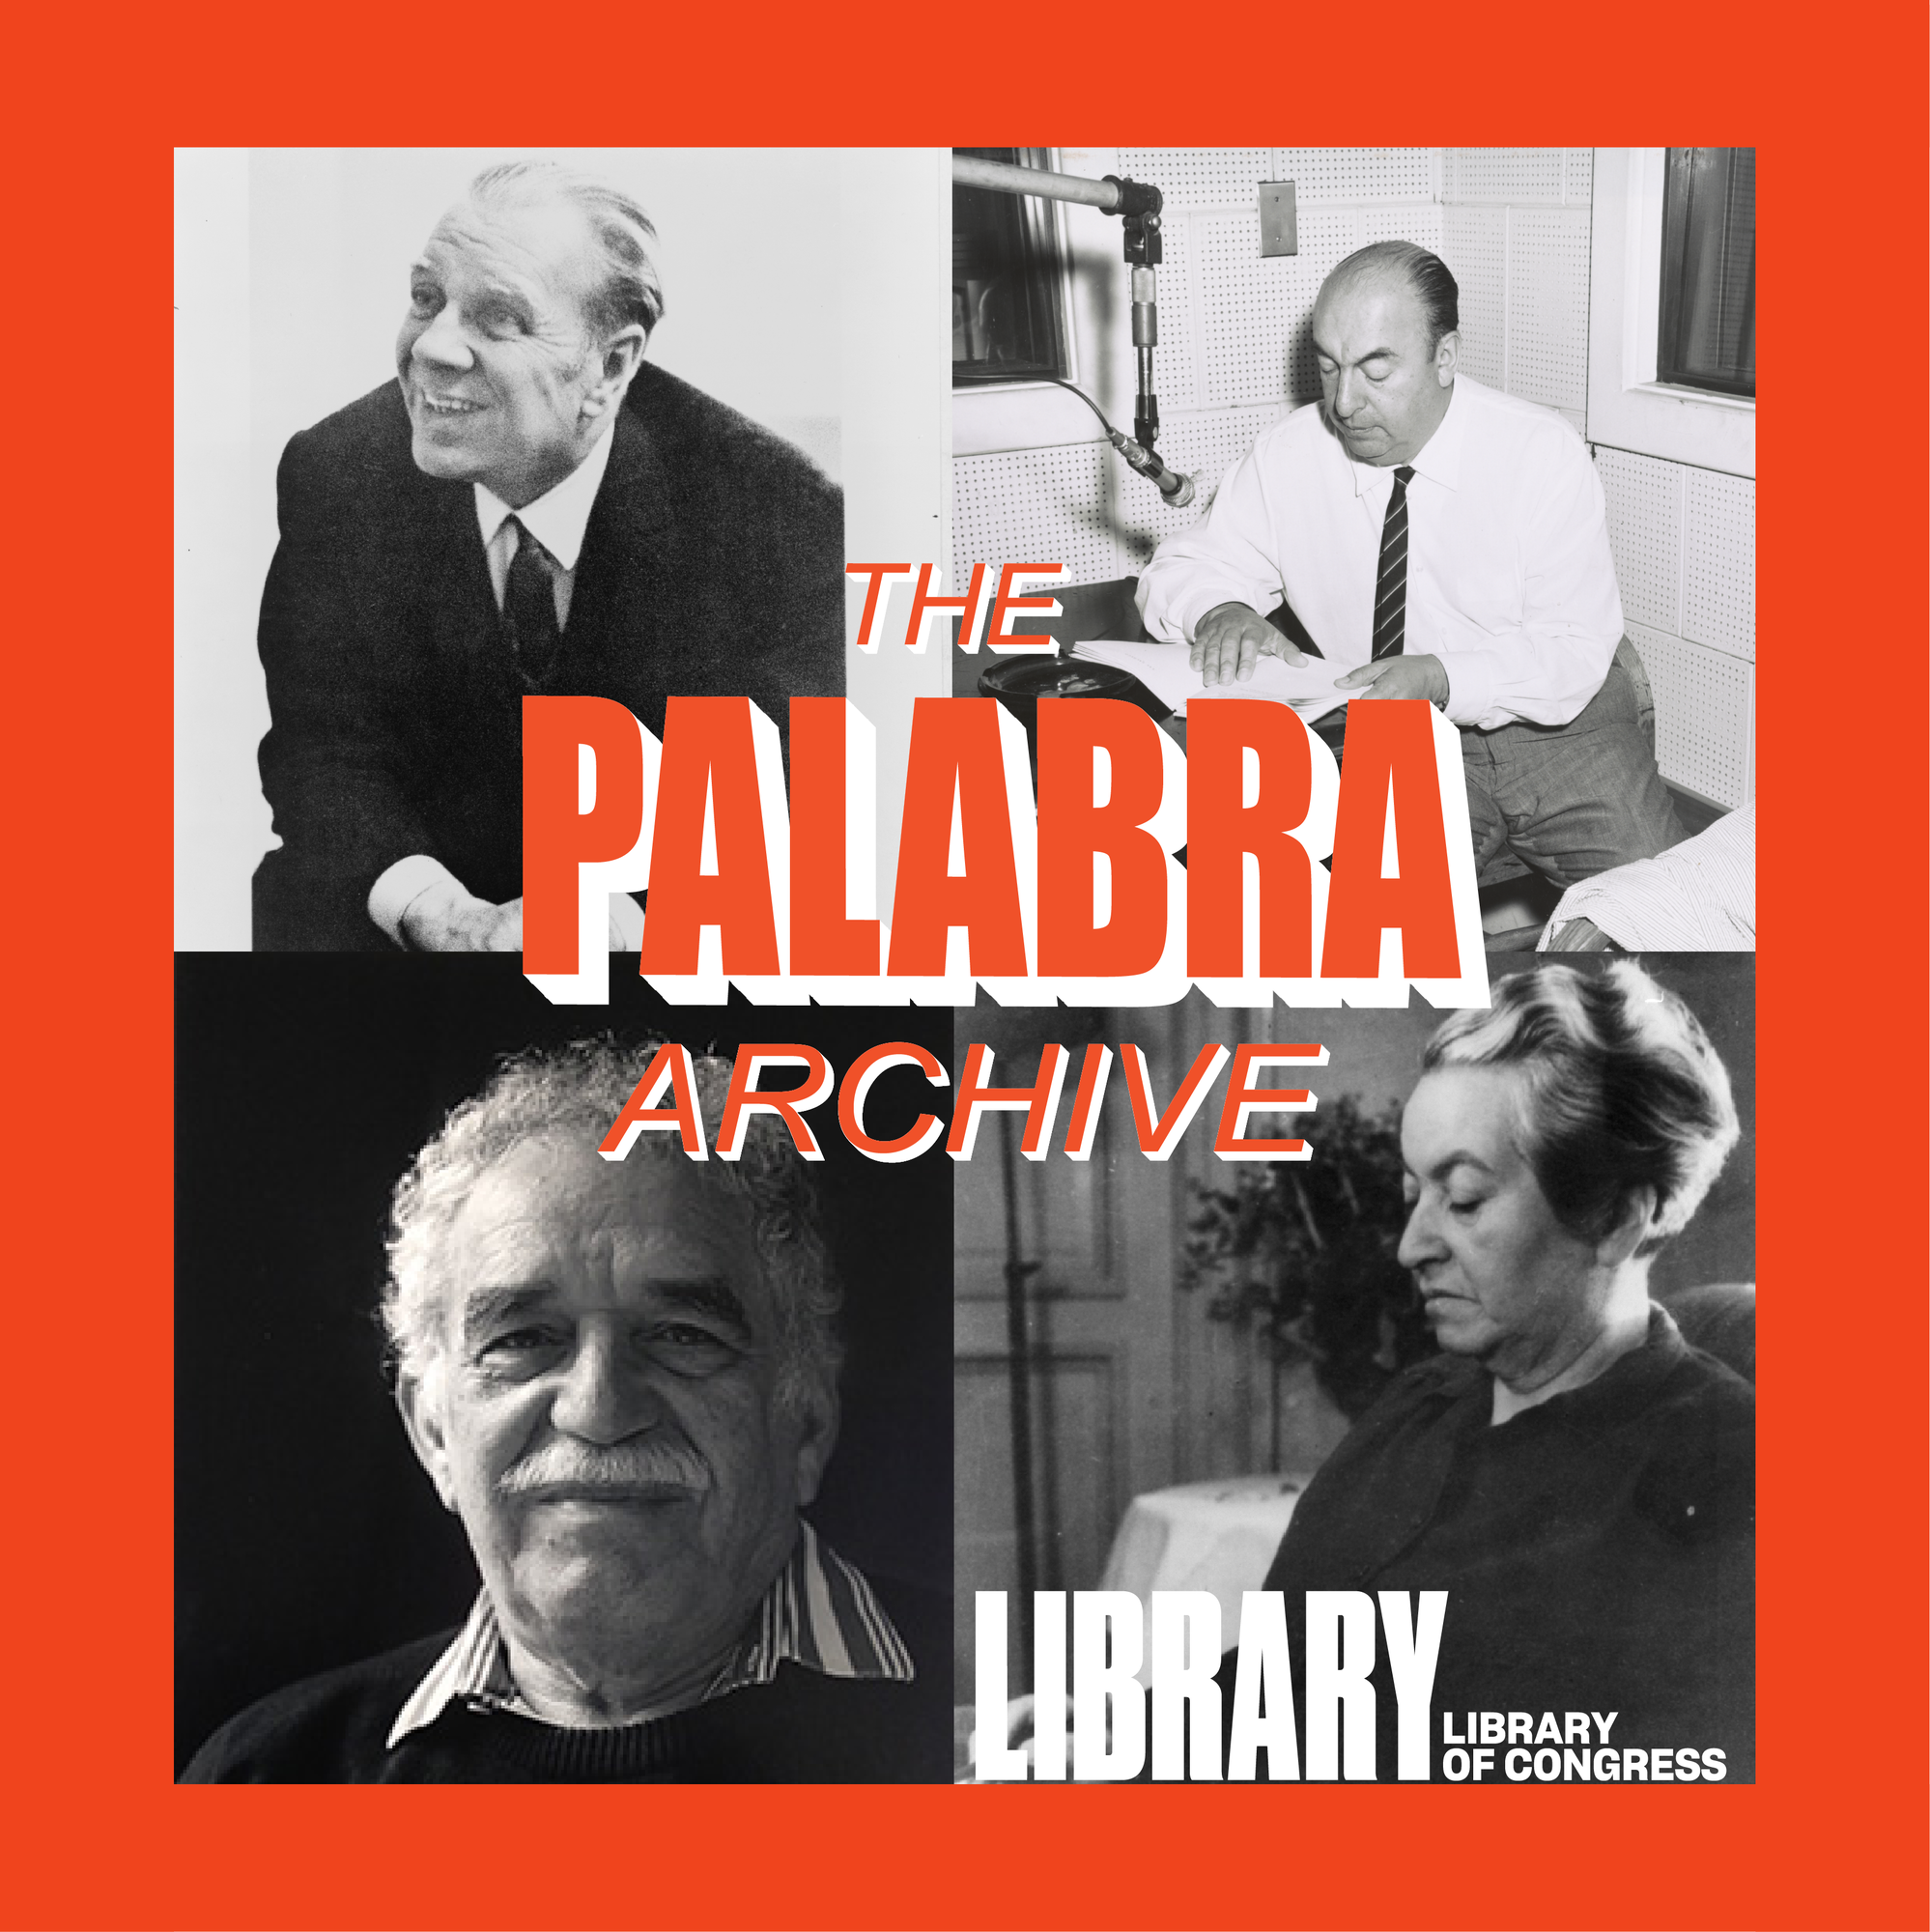 The PALABRA Archive